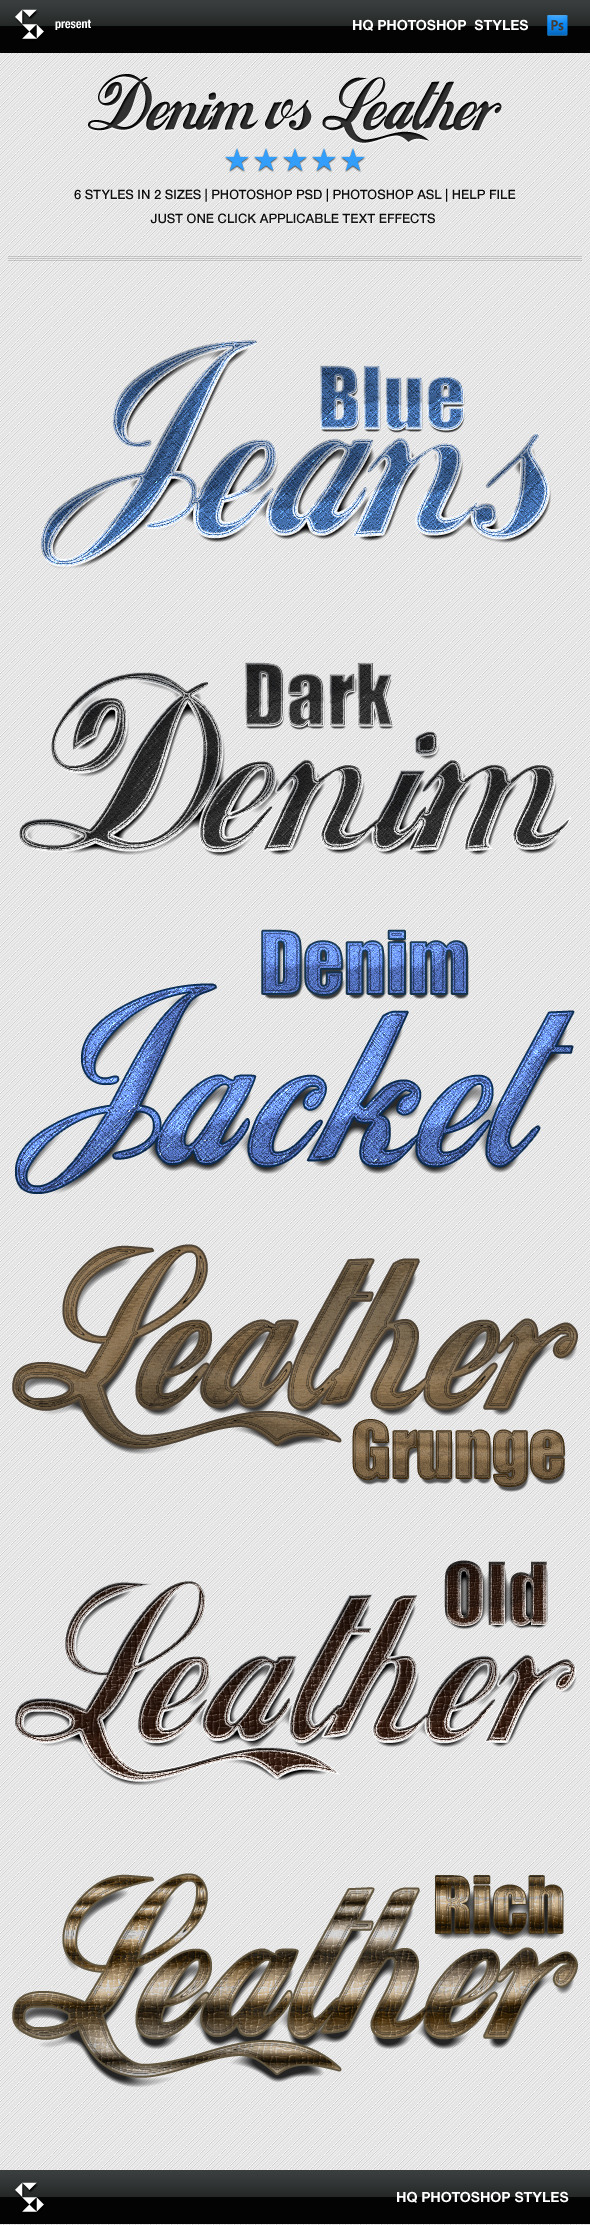 Denim and Leather Styles - Jeans and Leather - Text Effects Styles